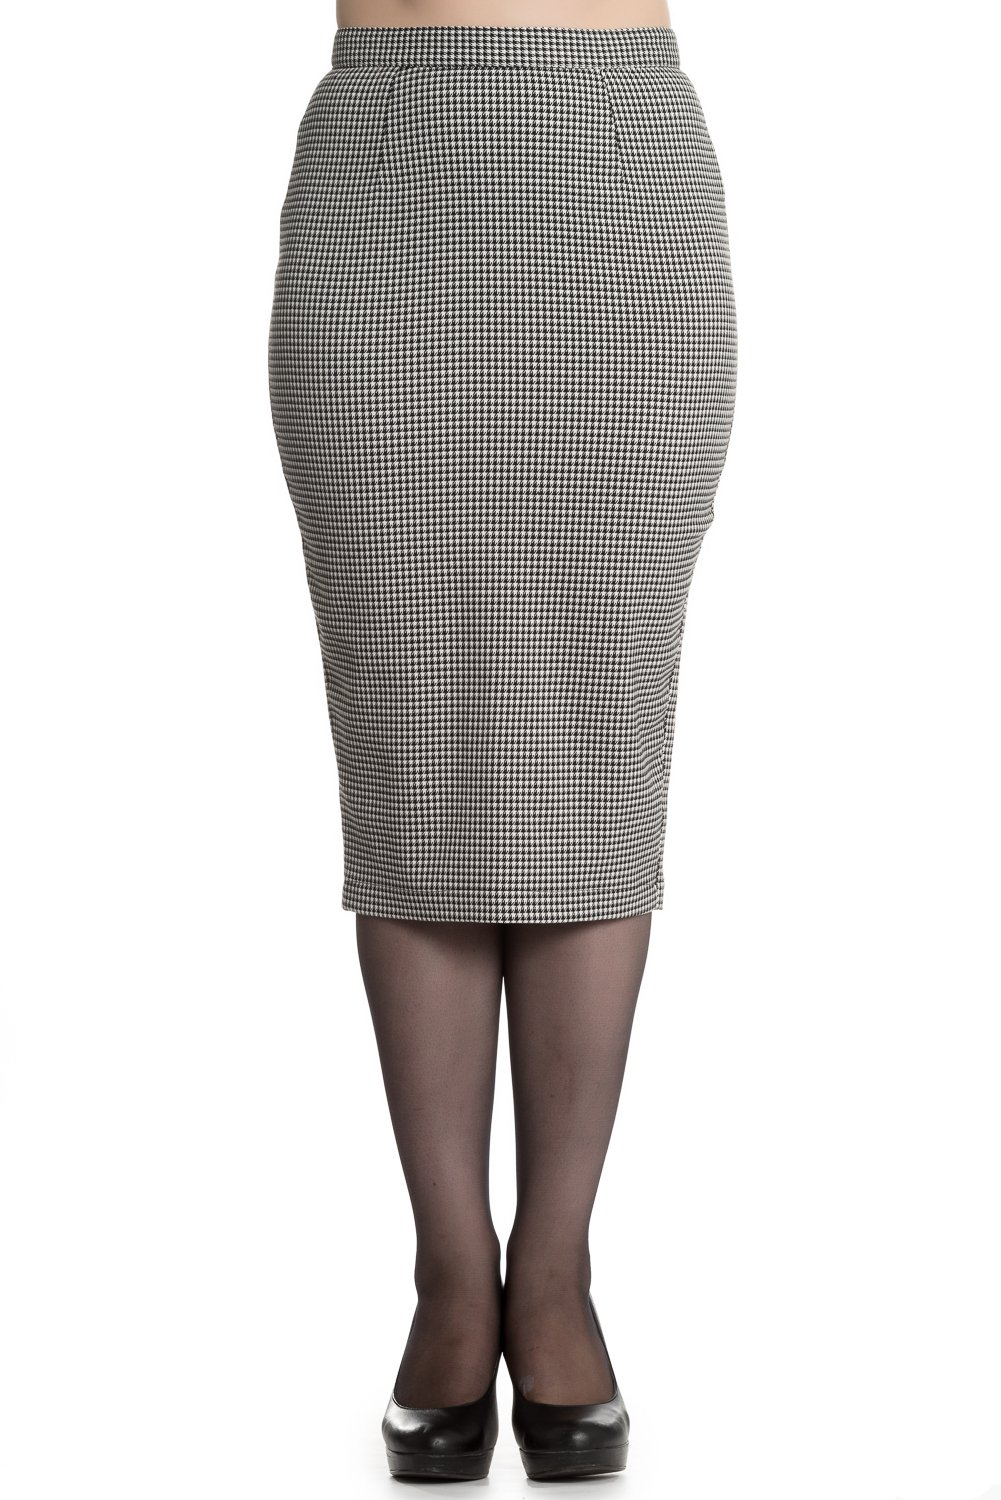 Hell Bunny Jackson Vintage Style Dogtooth Pencil Skirt (Black & White) - M by Hell Bunny